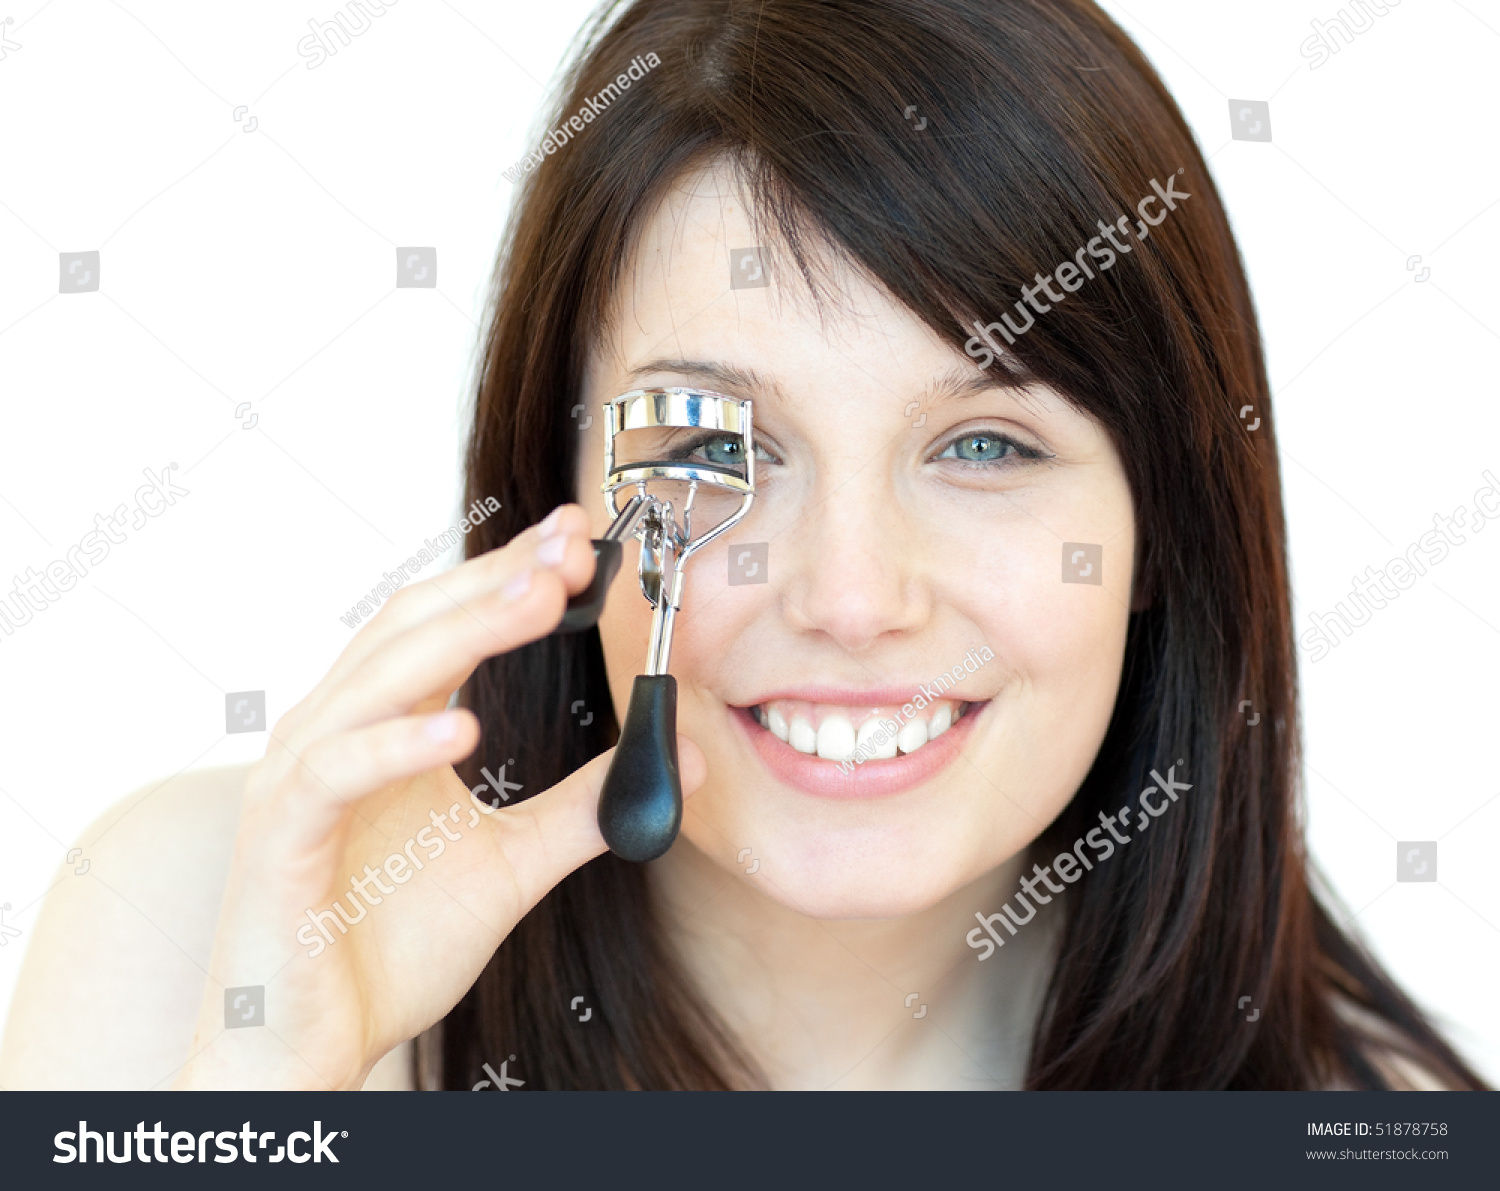 Charming teen girl using an eyelash curler against a white background stock photo 51878758 - Charming teenage girls image ...